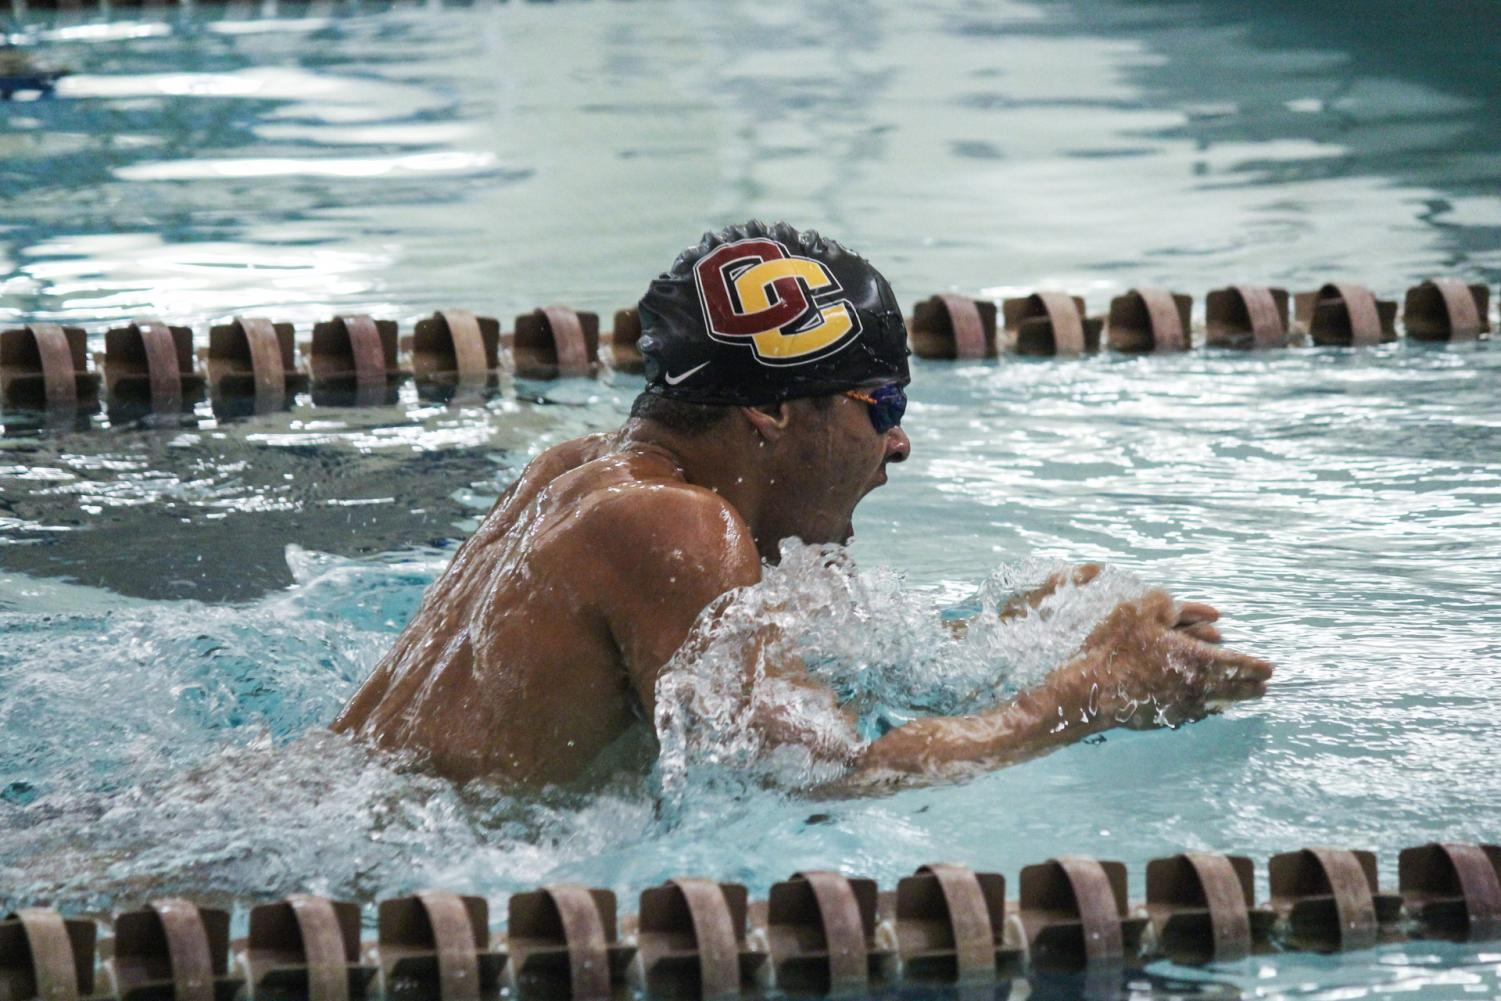 Junior swimmer Jacques Forbes competes at Oberlin's meet against the Hiram College Terriers last year. Both the men's and women's teams lost their meets against the Case Western Reserve University Spartans last weekend.